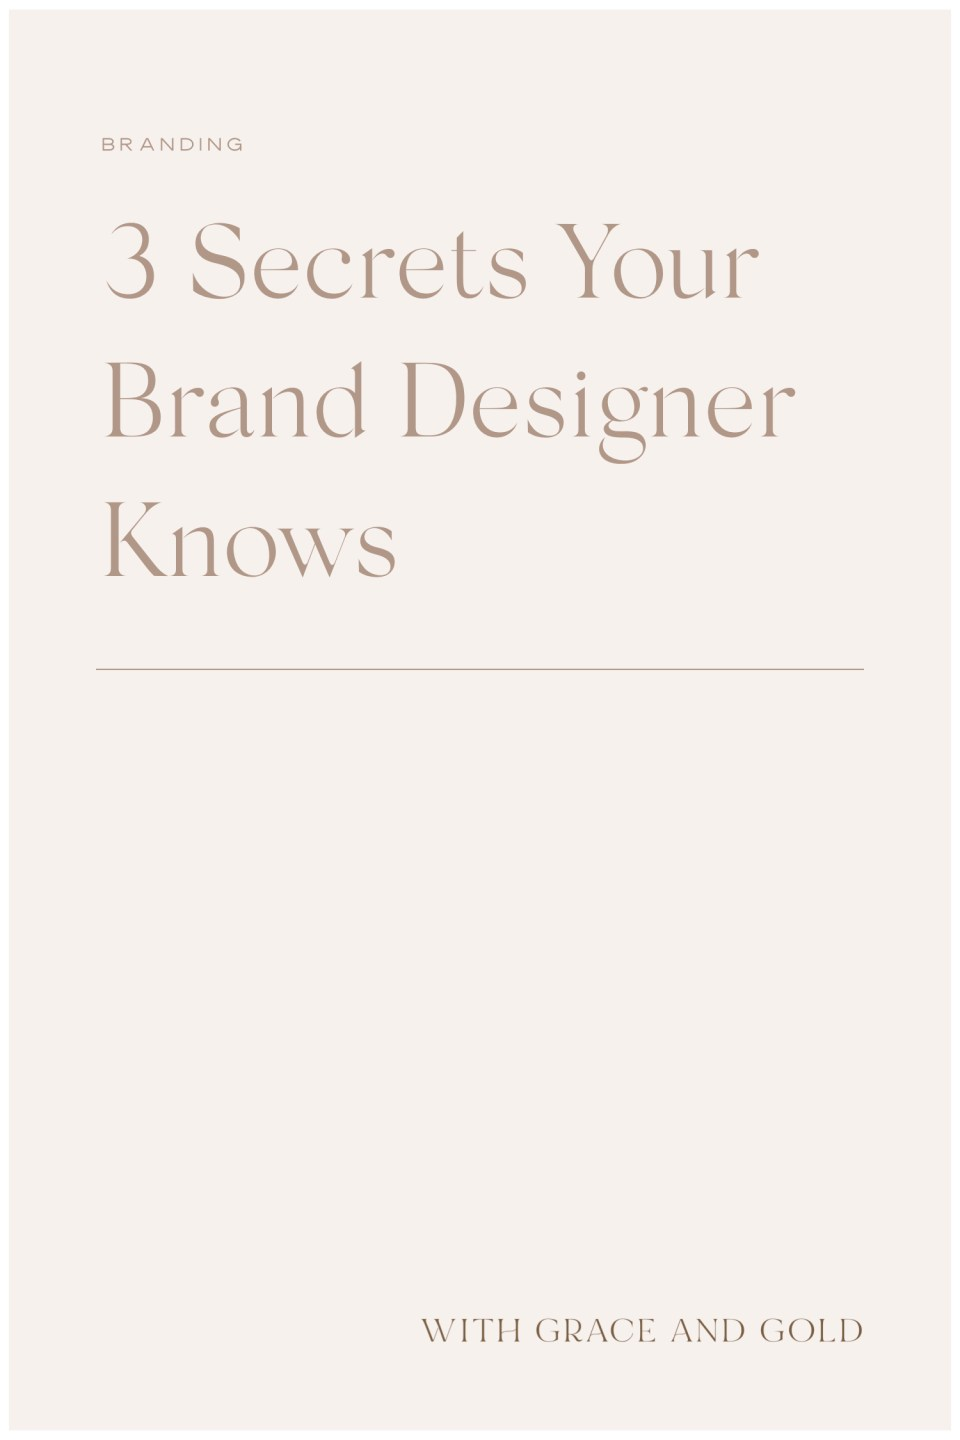 3 Secrets Your Brand Designer Knows by With Grace and Gold